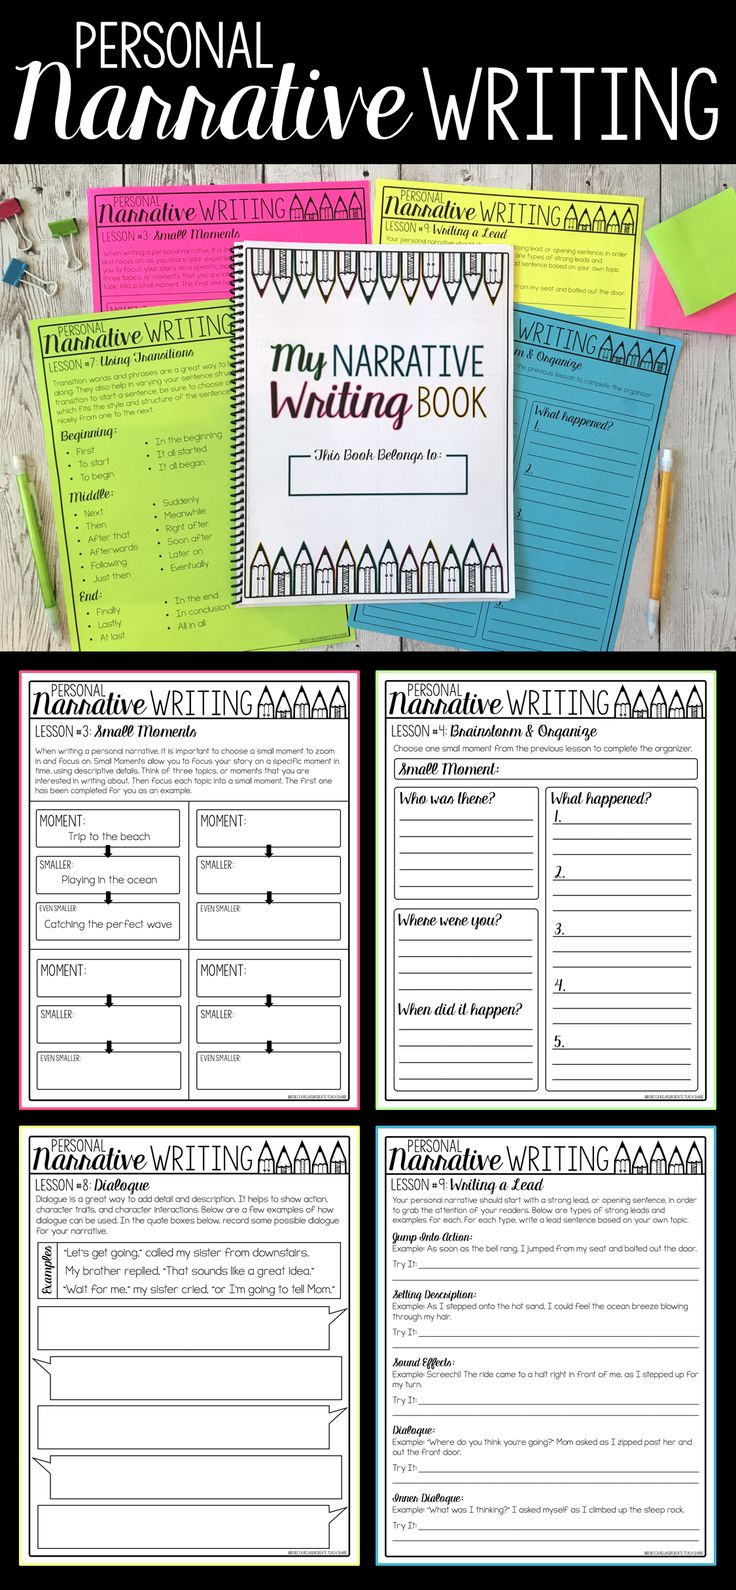 This personal narrative writing unit is perfect for teaching upper elementary students all about the genre of narrative writing. There are tons on mini lessons and activities to guide students through writing their first personal narrative. No prep and easy to follow!!